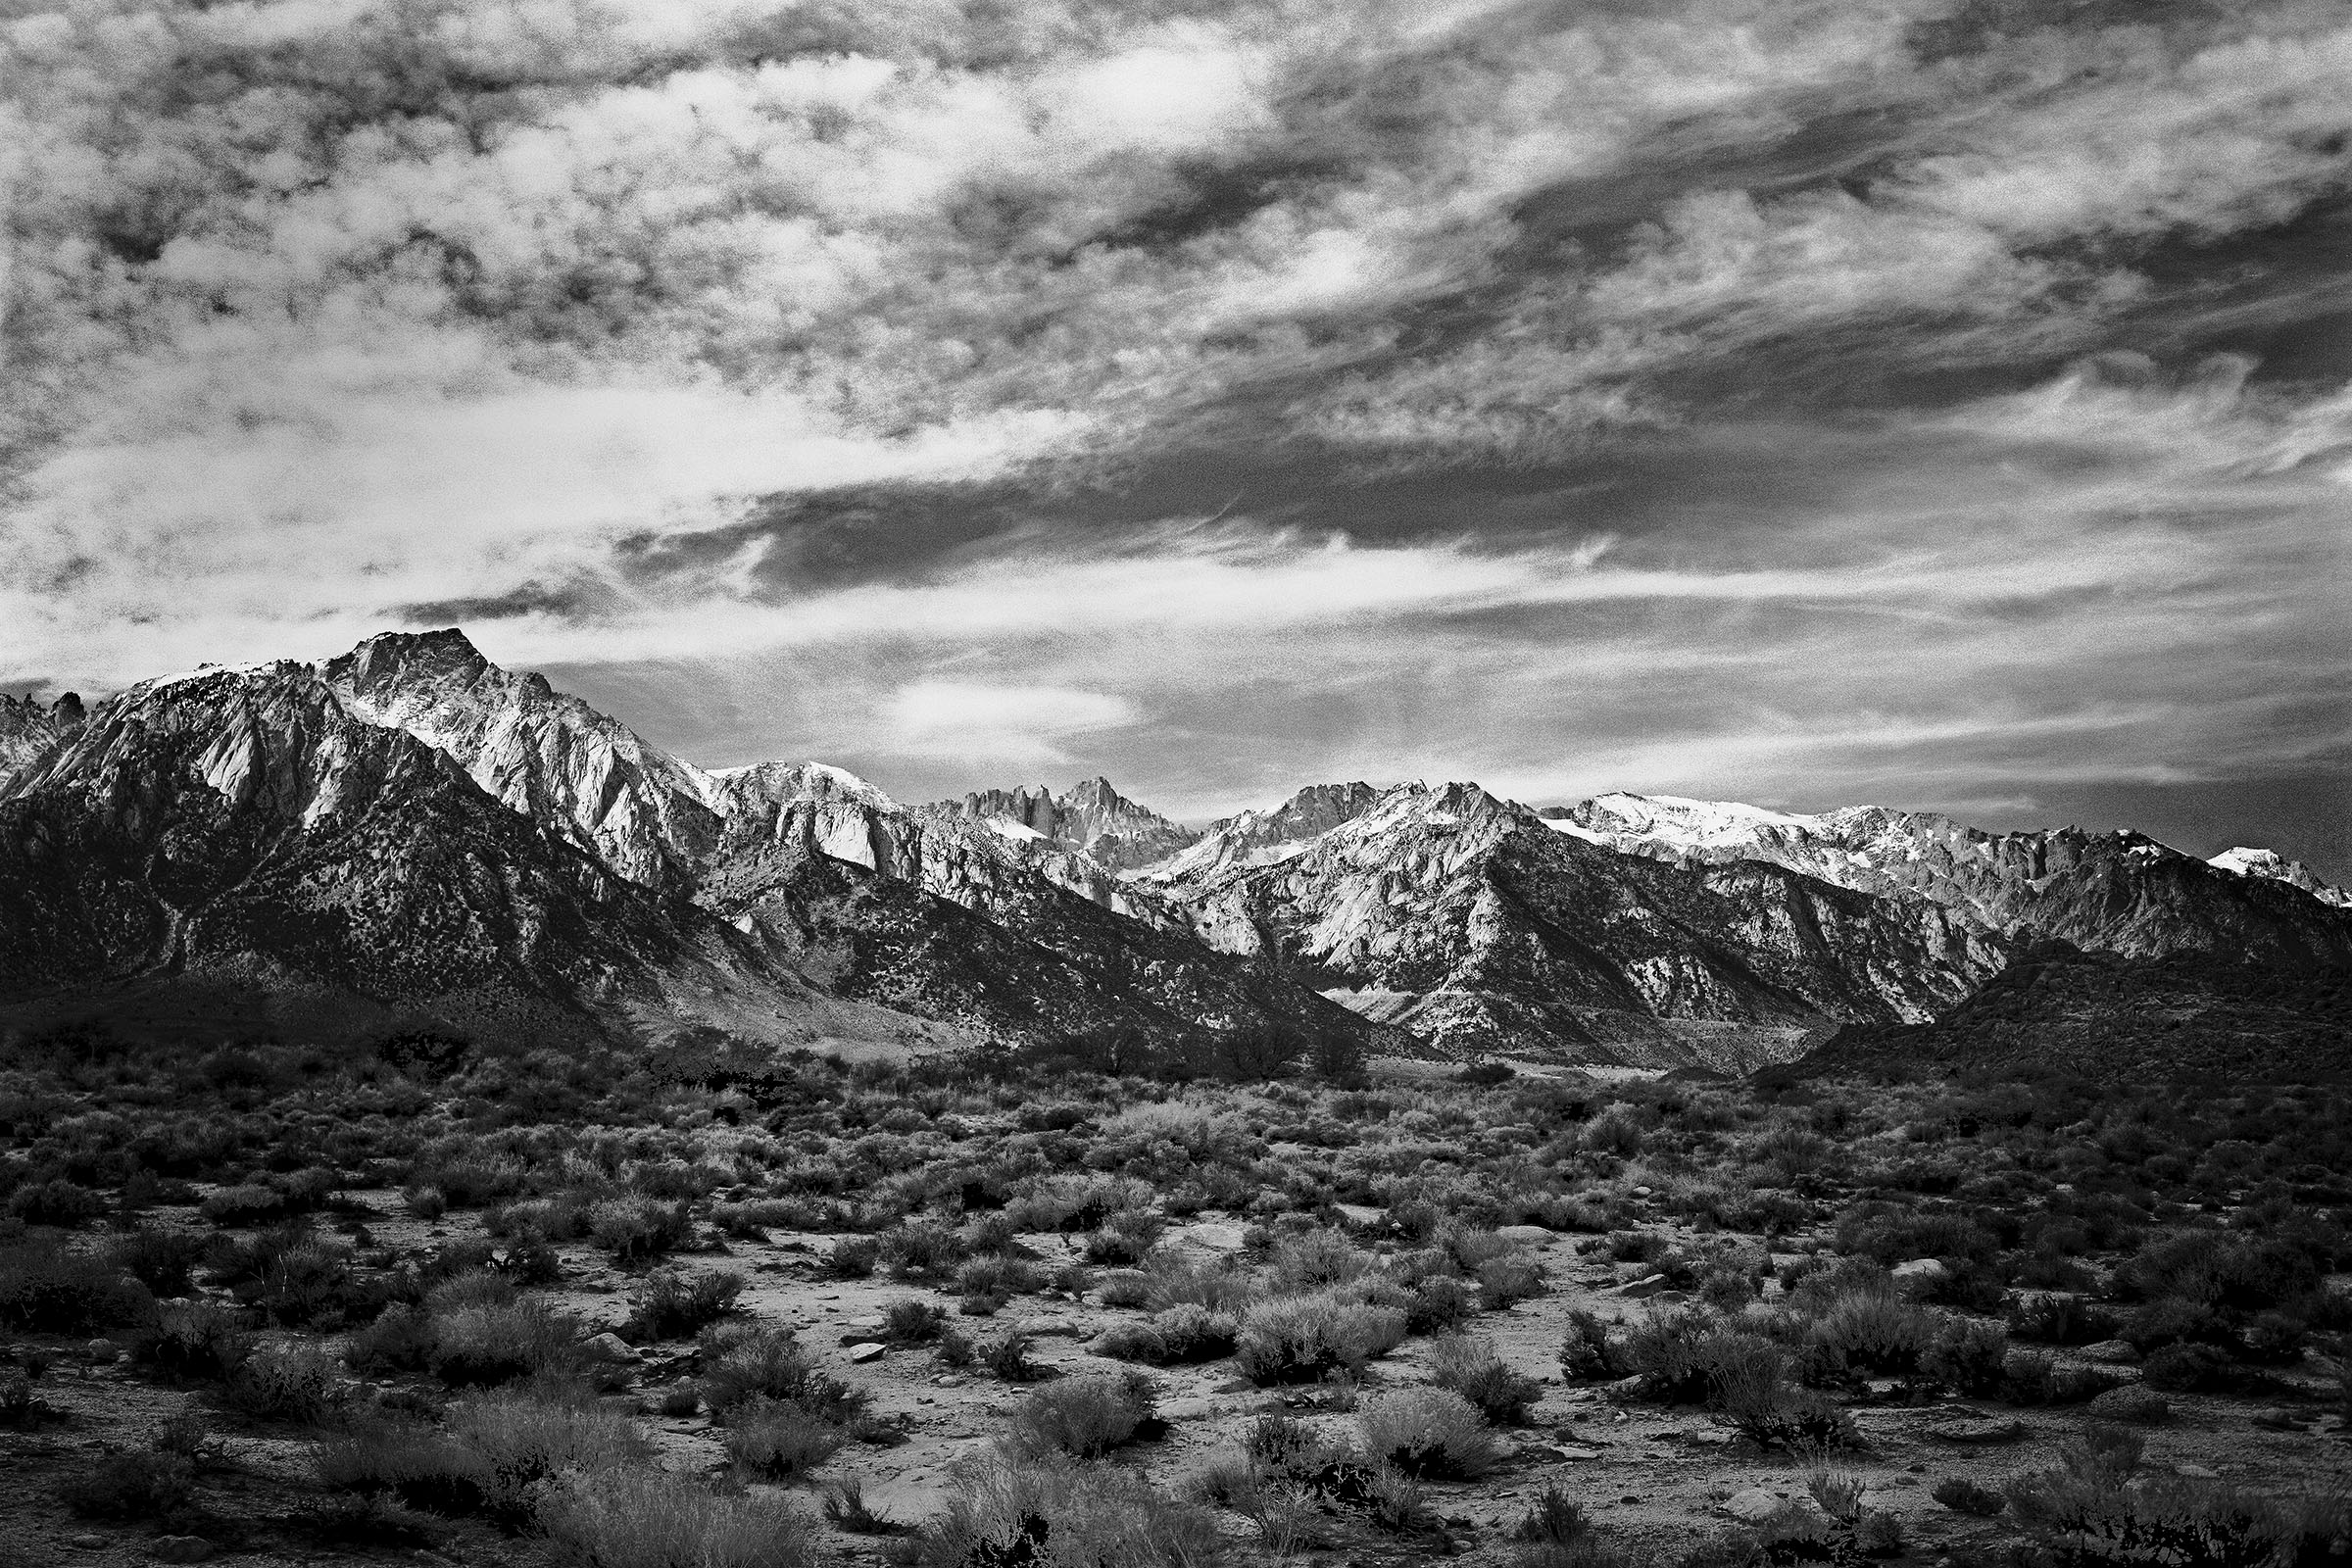 Mt. Whitney from the Alabama Hills Hwy 395 near Lone Pine, CA by Chuck Farmer